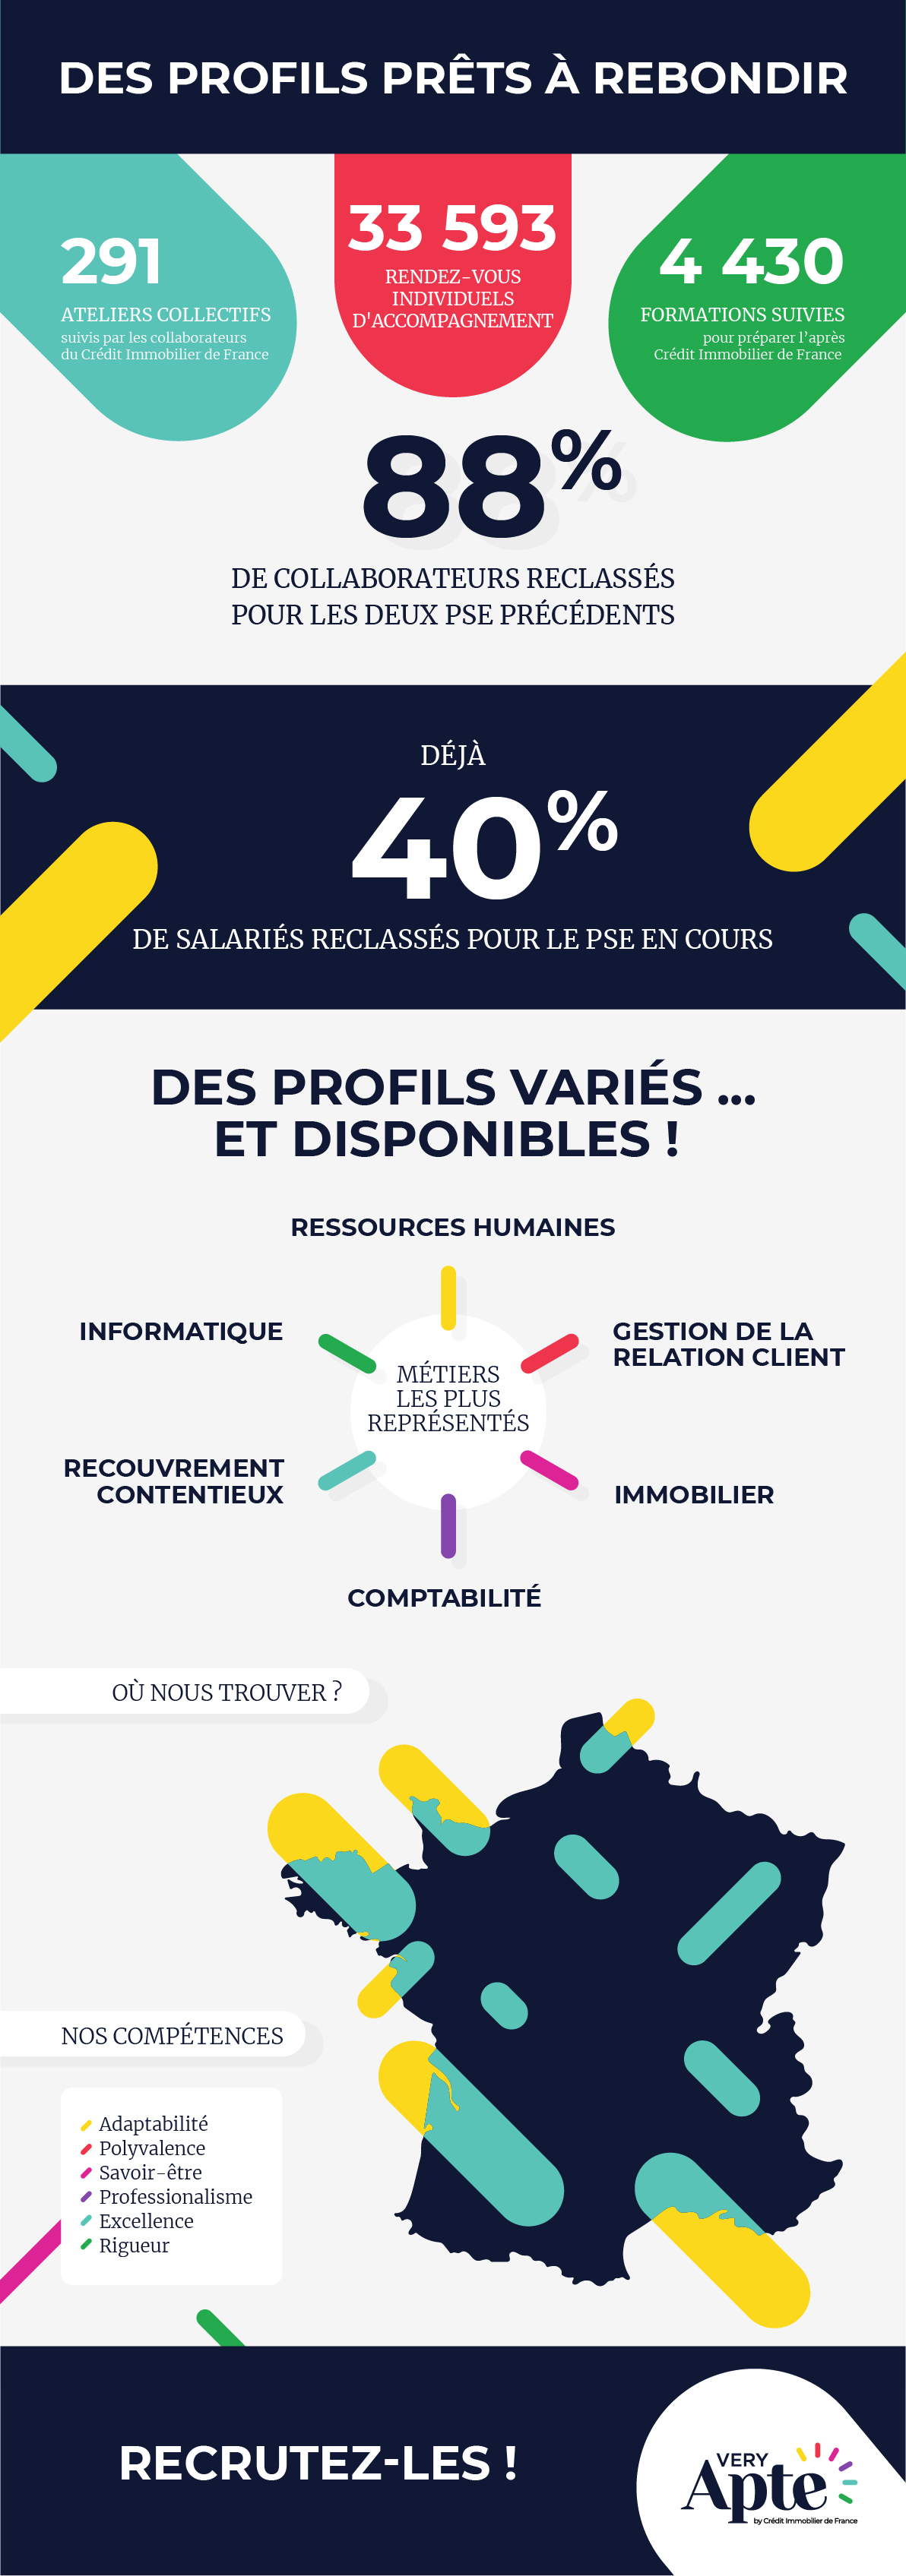 20180307_CIF_Infographie_VDef